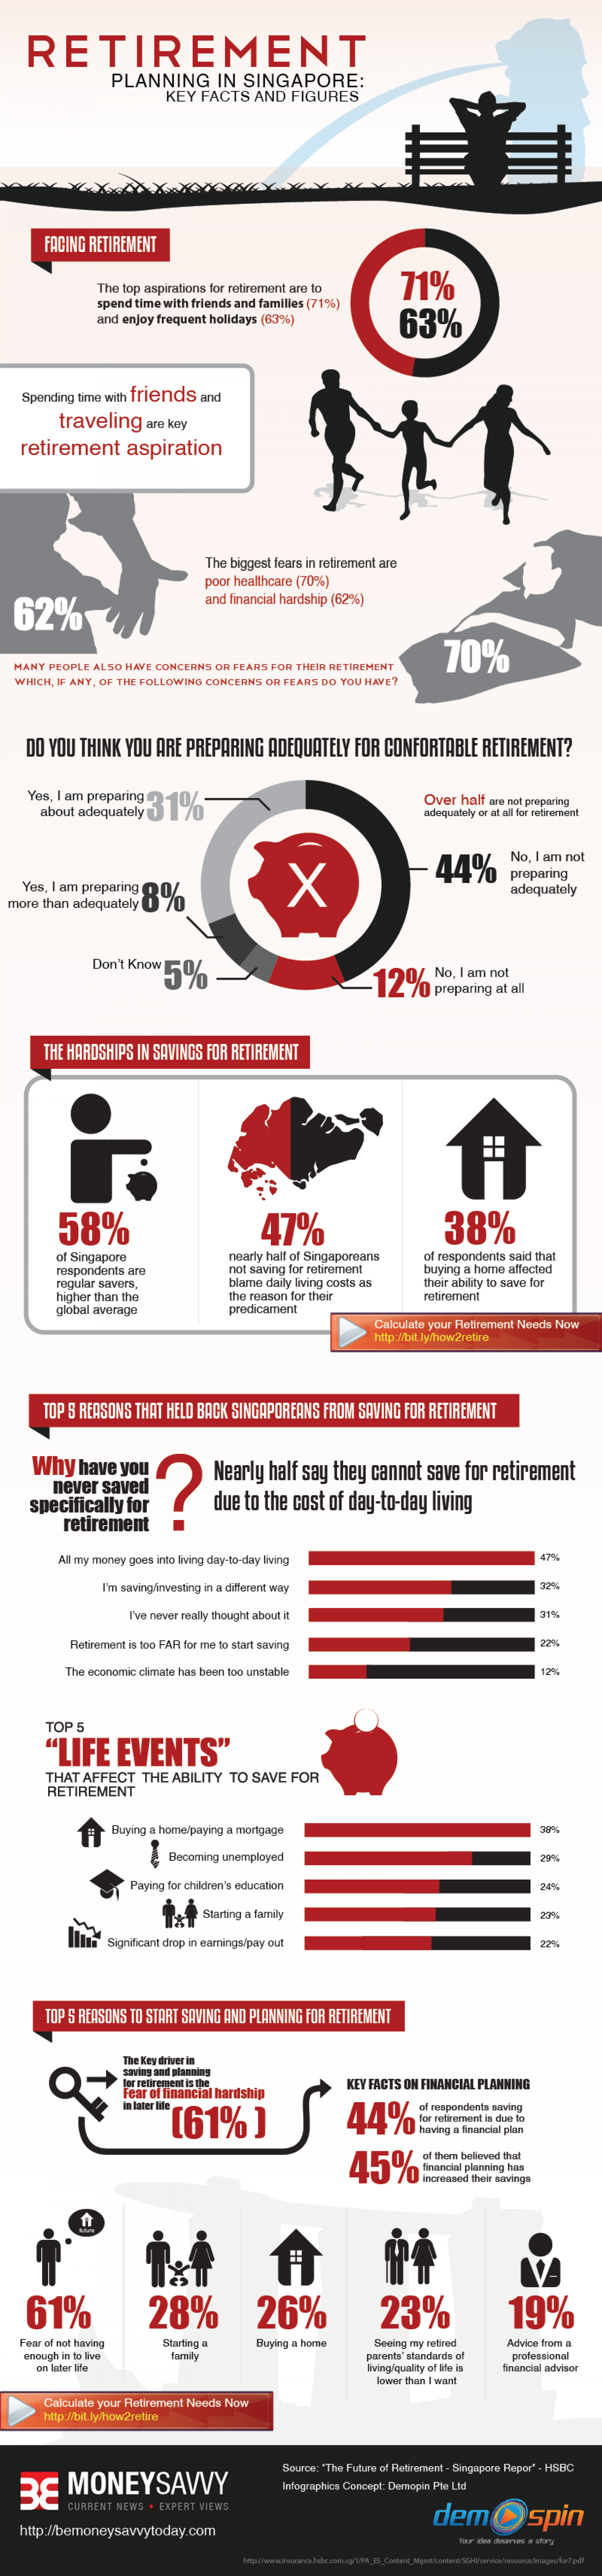 Retirement Planning in Singapore: Key Facts and Figures Infographic